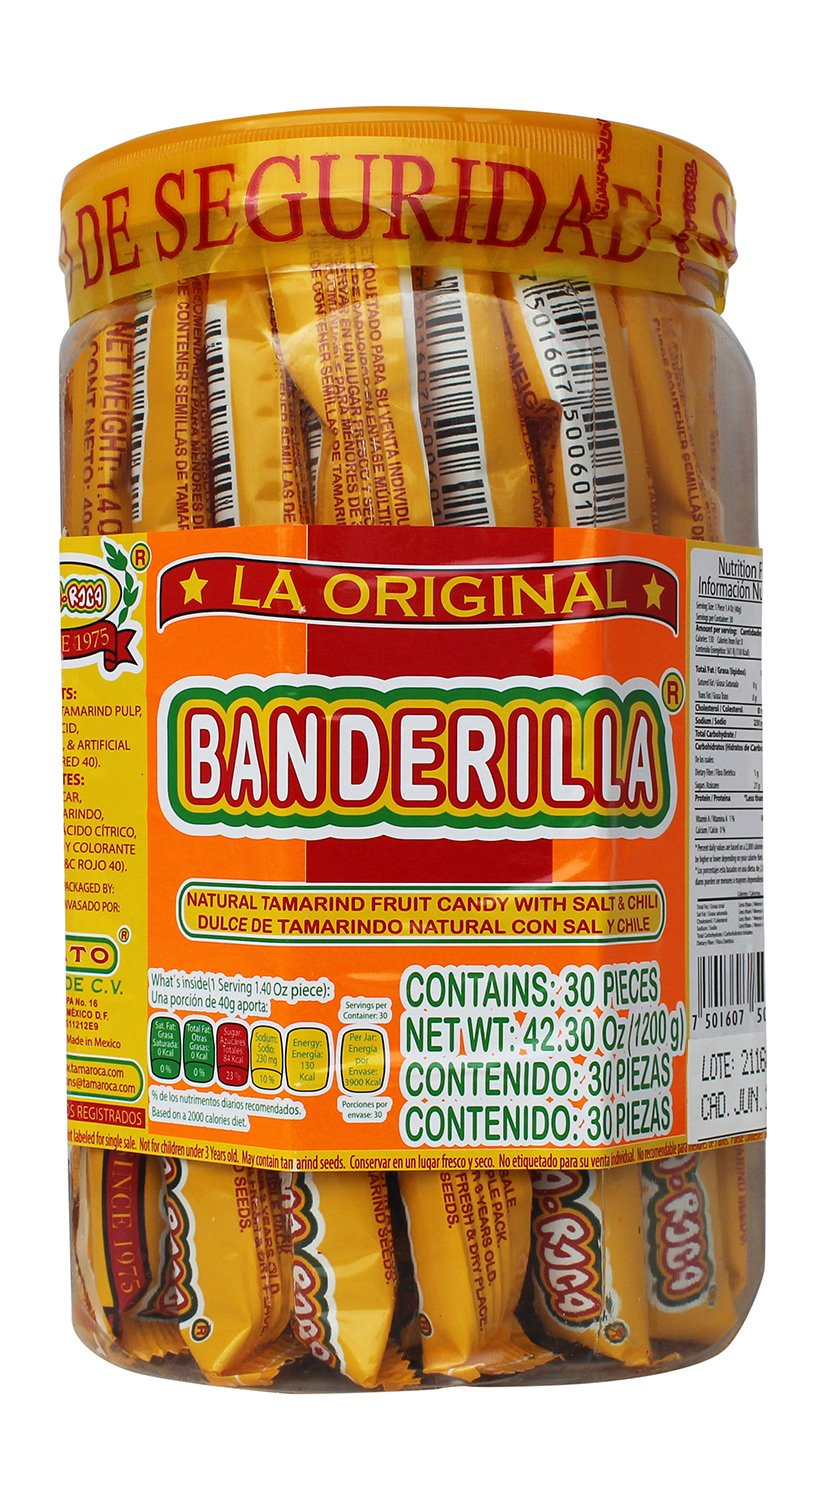 Banderilla Tama-Roca Tamarindo Mexican Candy Sticks. Contains 30 Pieces of Spicy Tamarind Candy With Salt And Chili. : Grocery & Gourmet Food